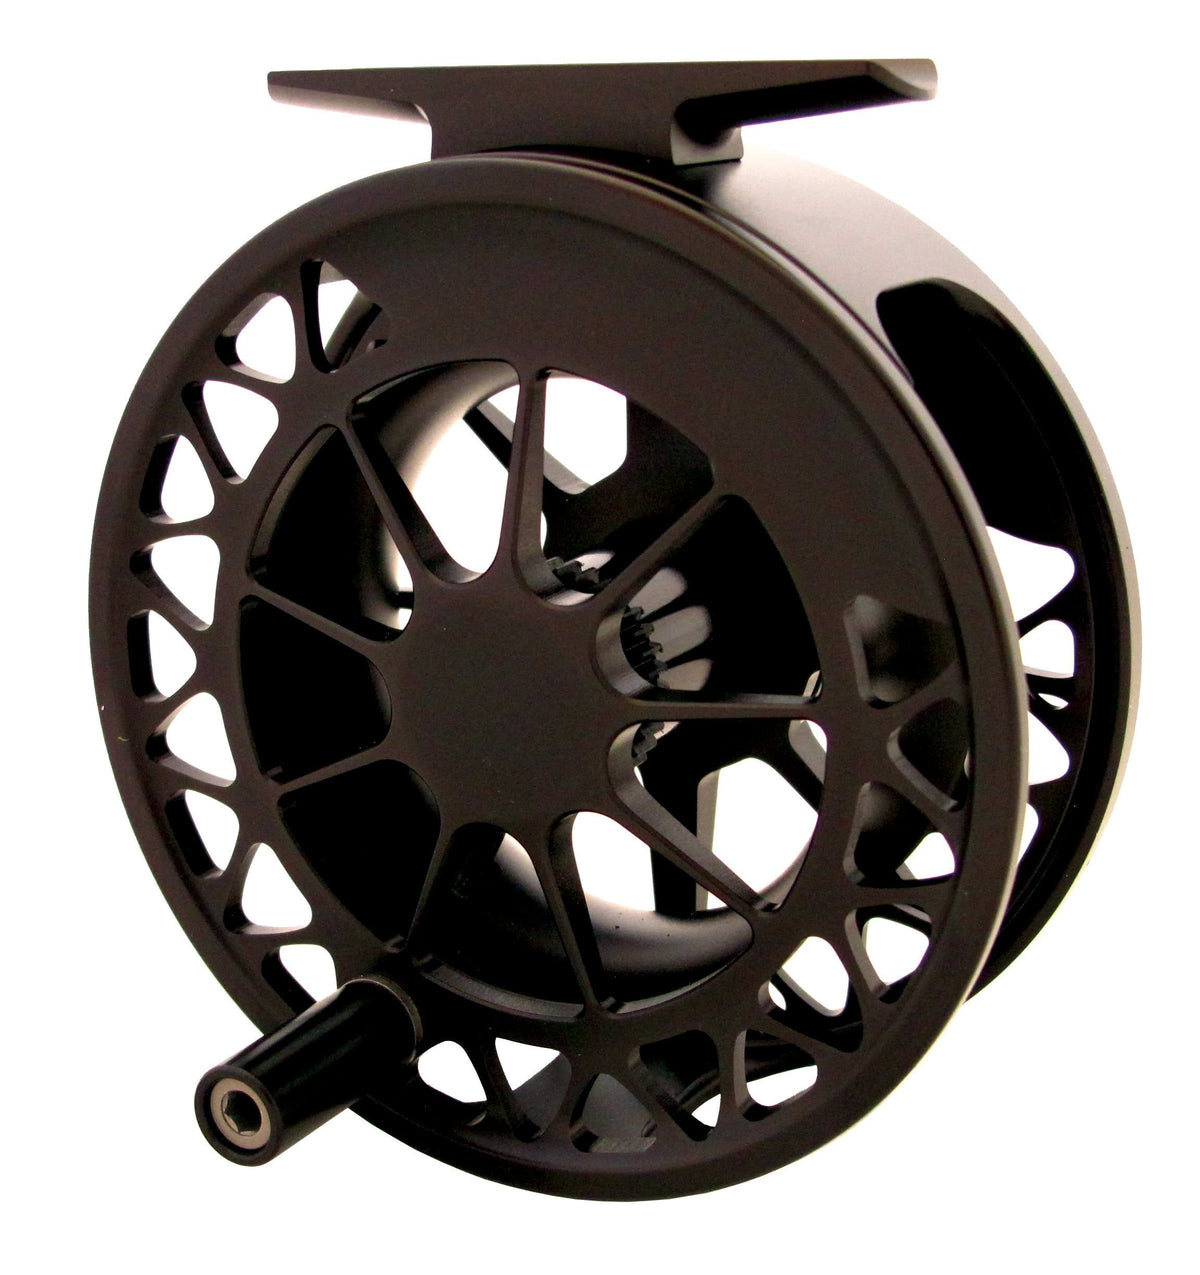 Waterworks Lamson Guru II Special Edition Black spool side